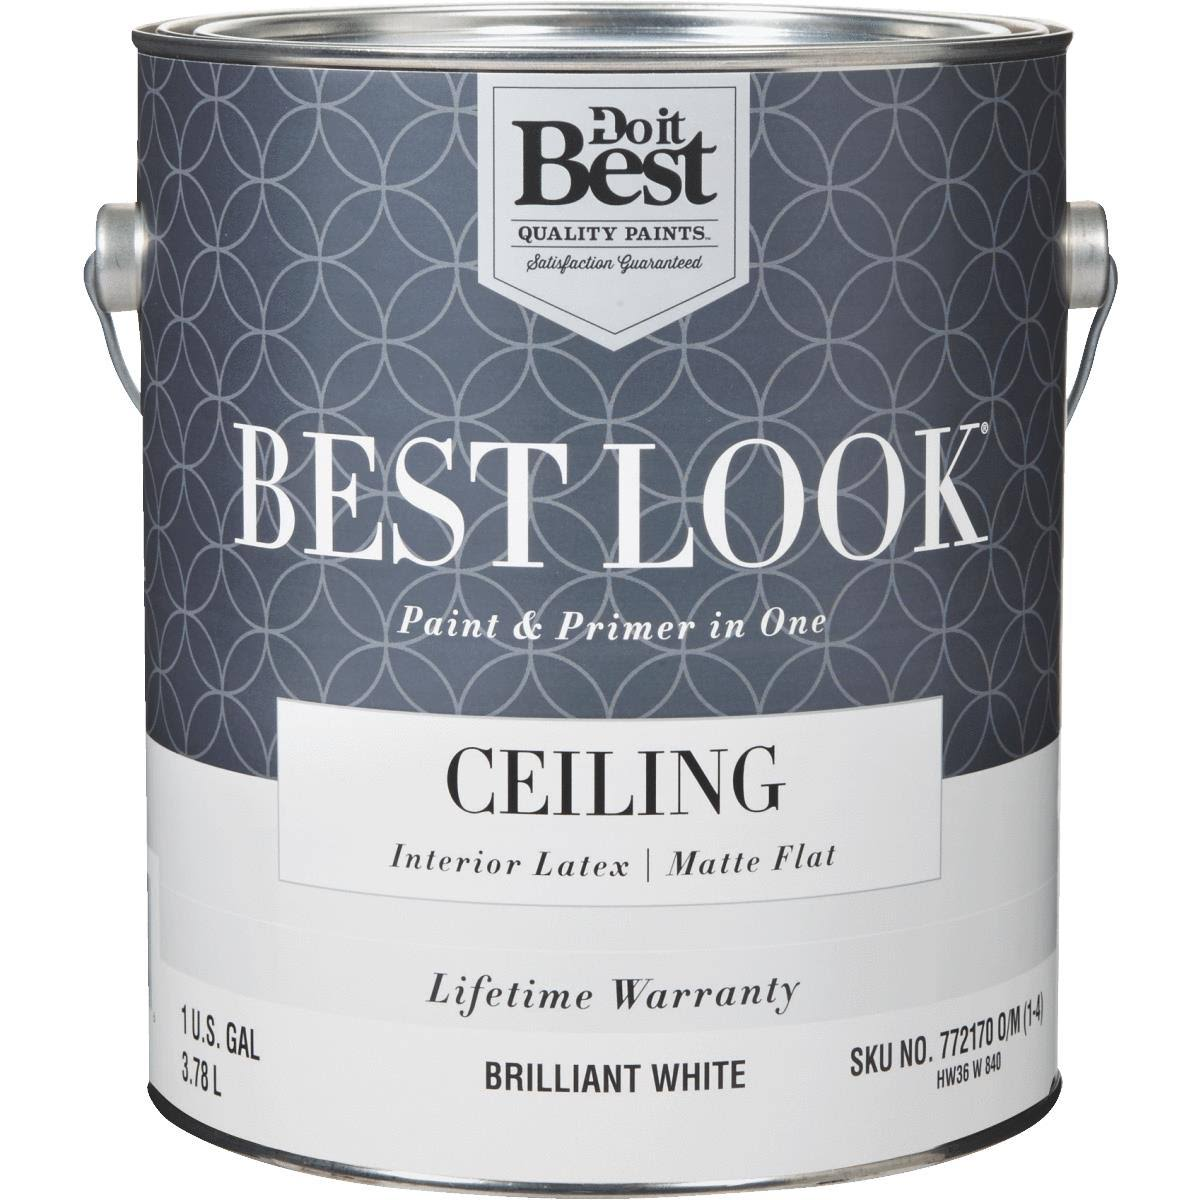 Best Look Latex Flat Brilliant Paint and Primer - Brilliant White, 1 Gallon